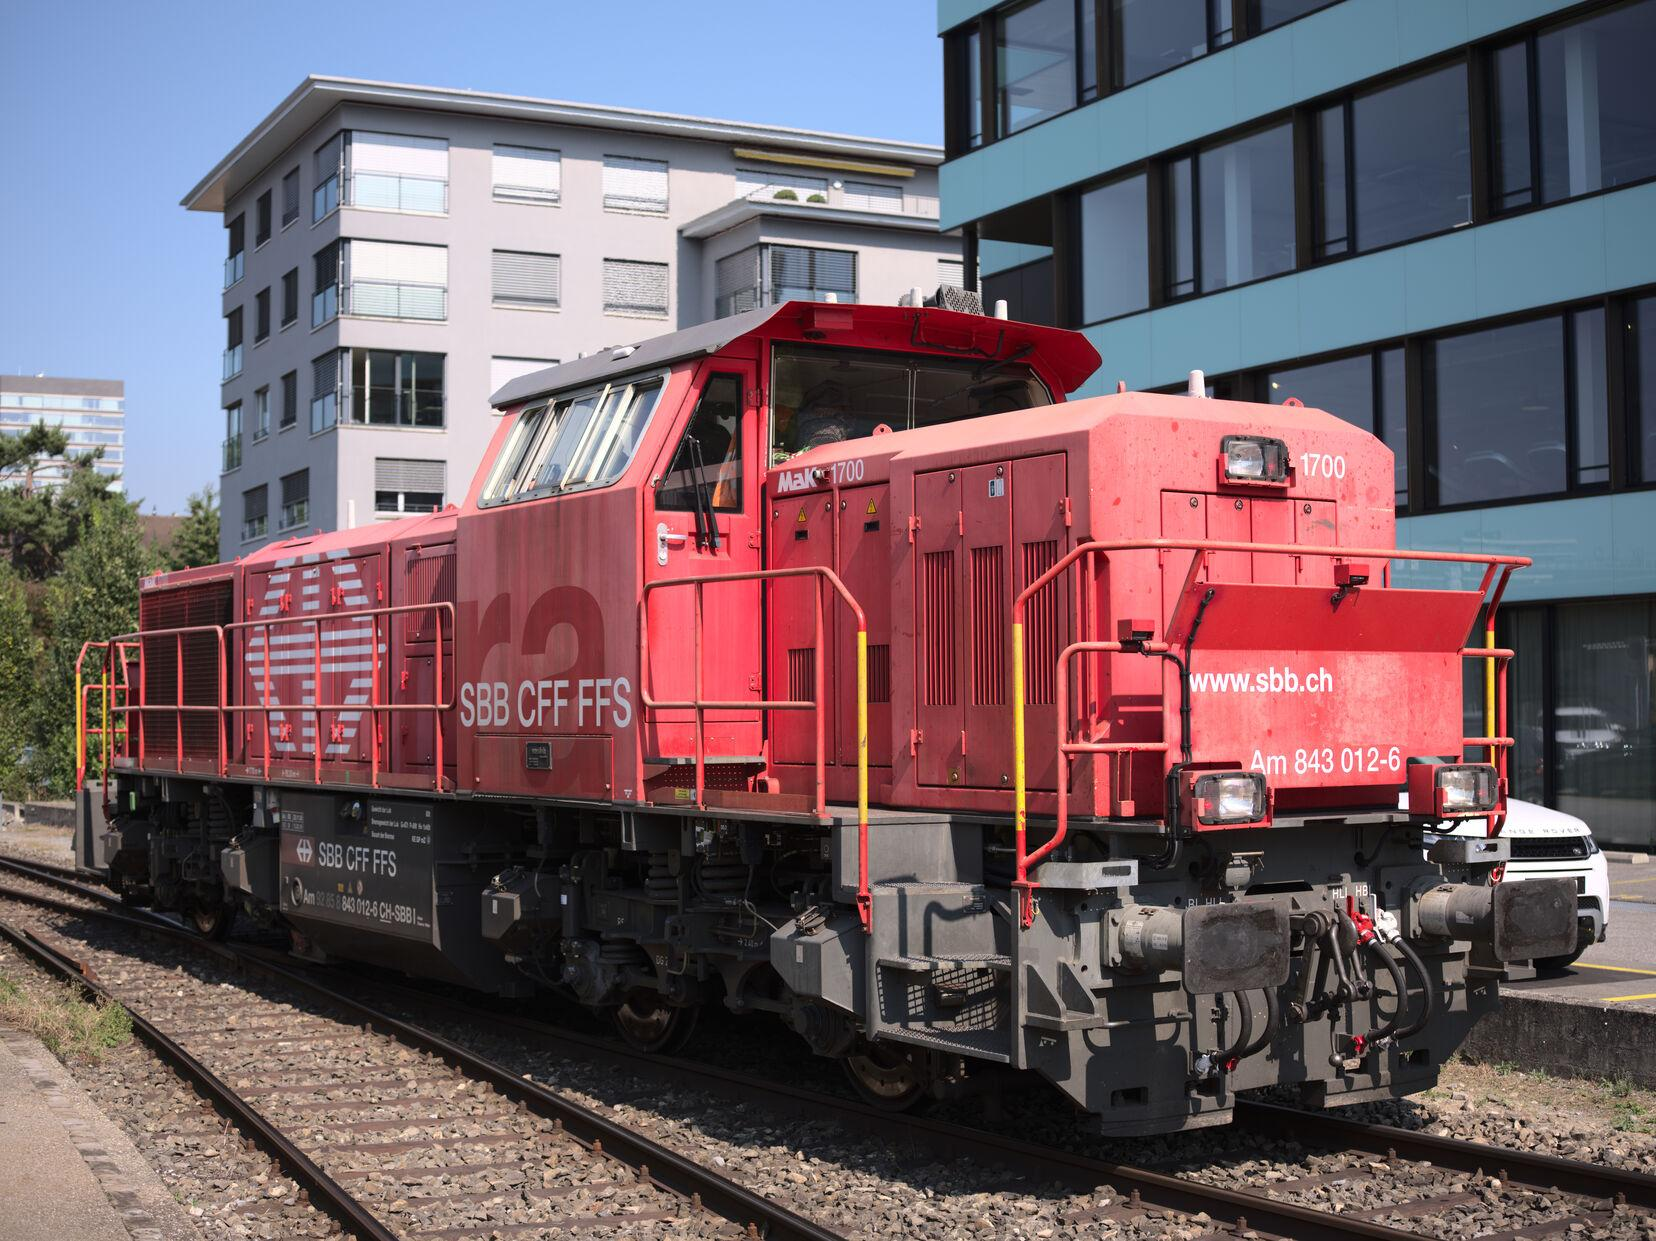 image from SBB